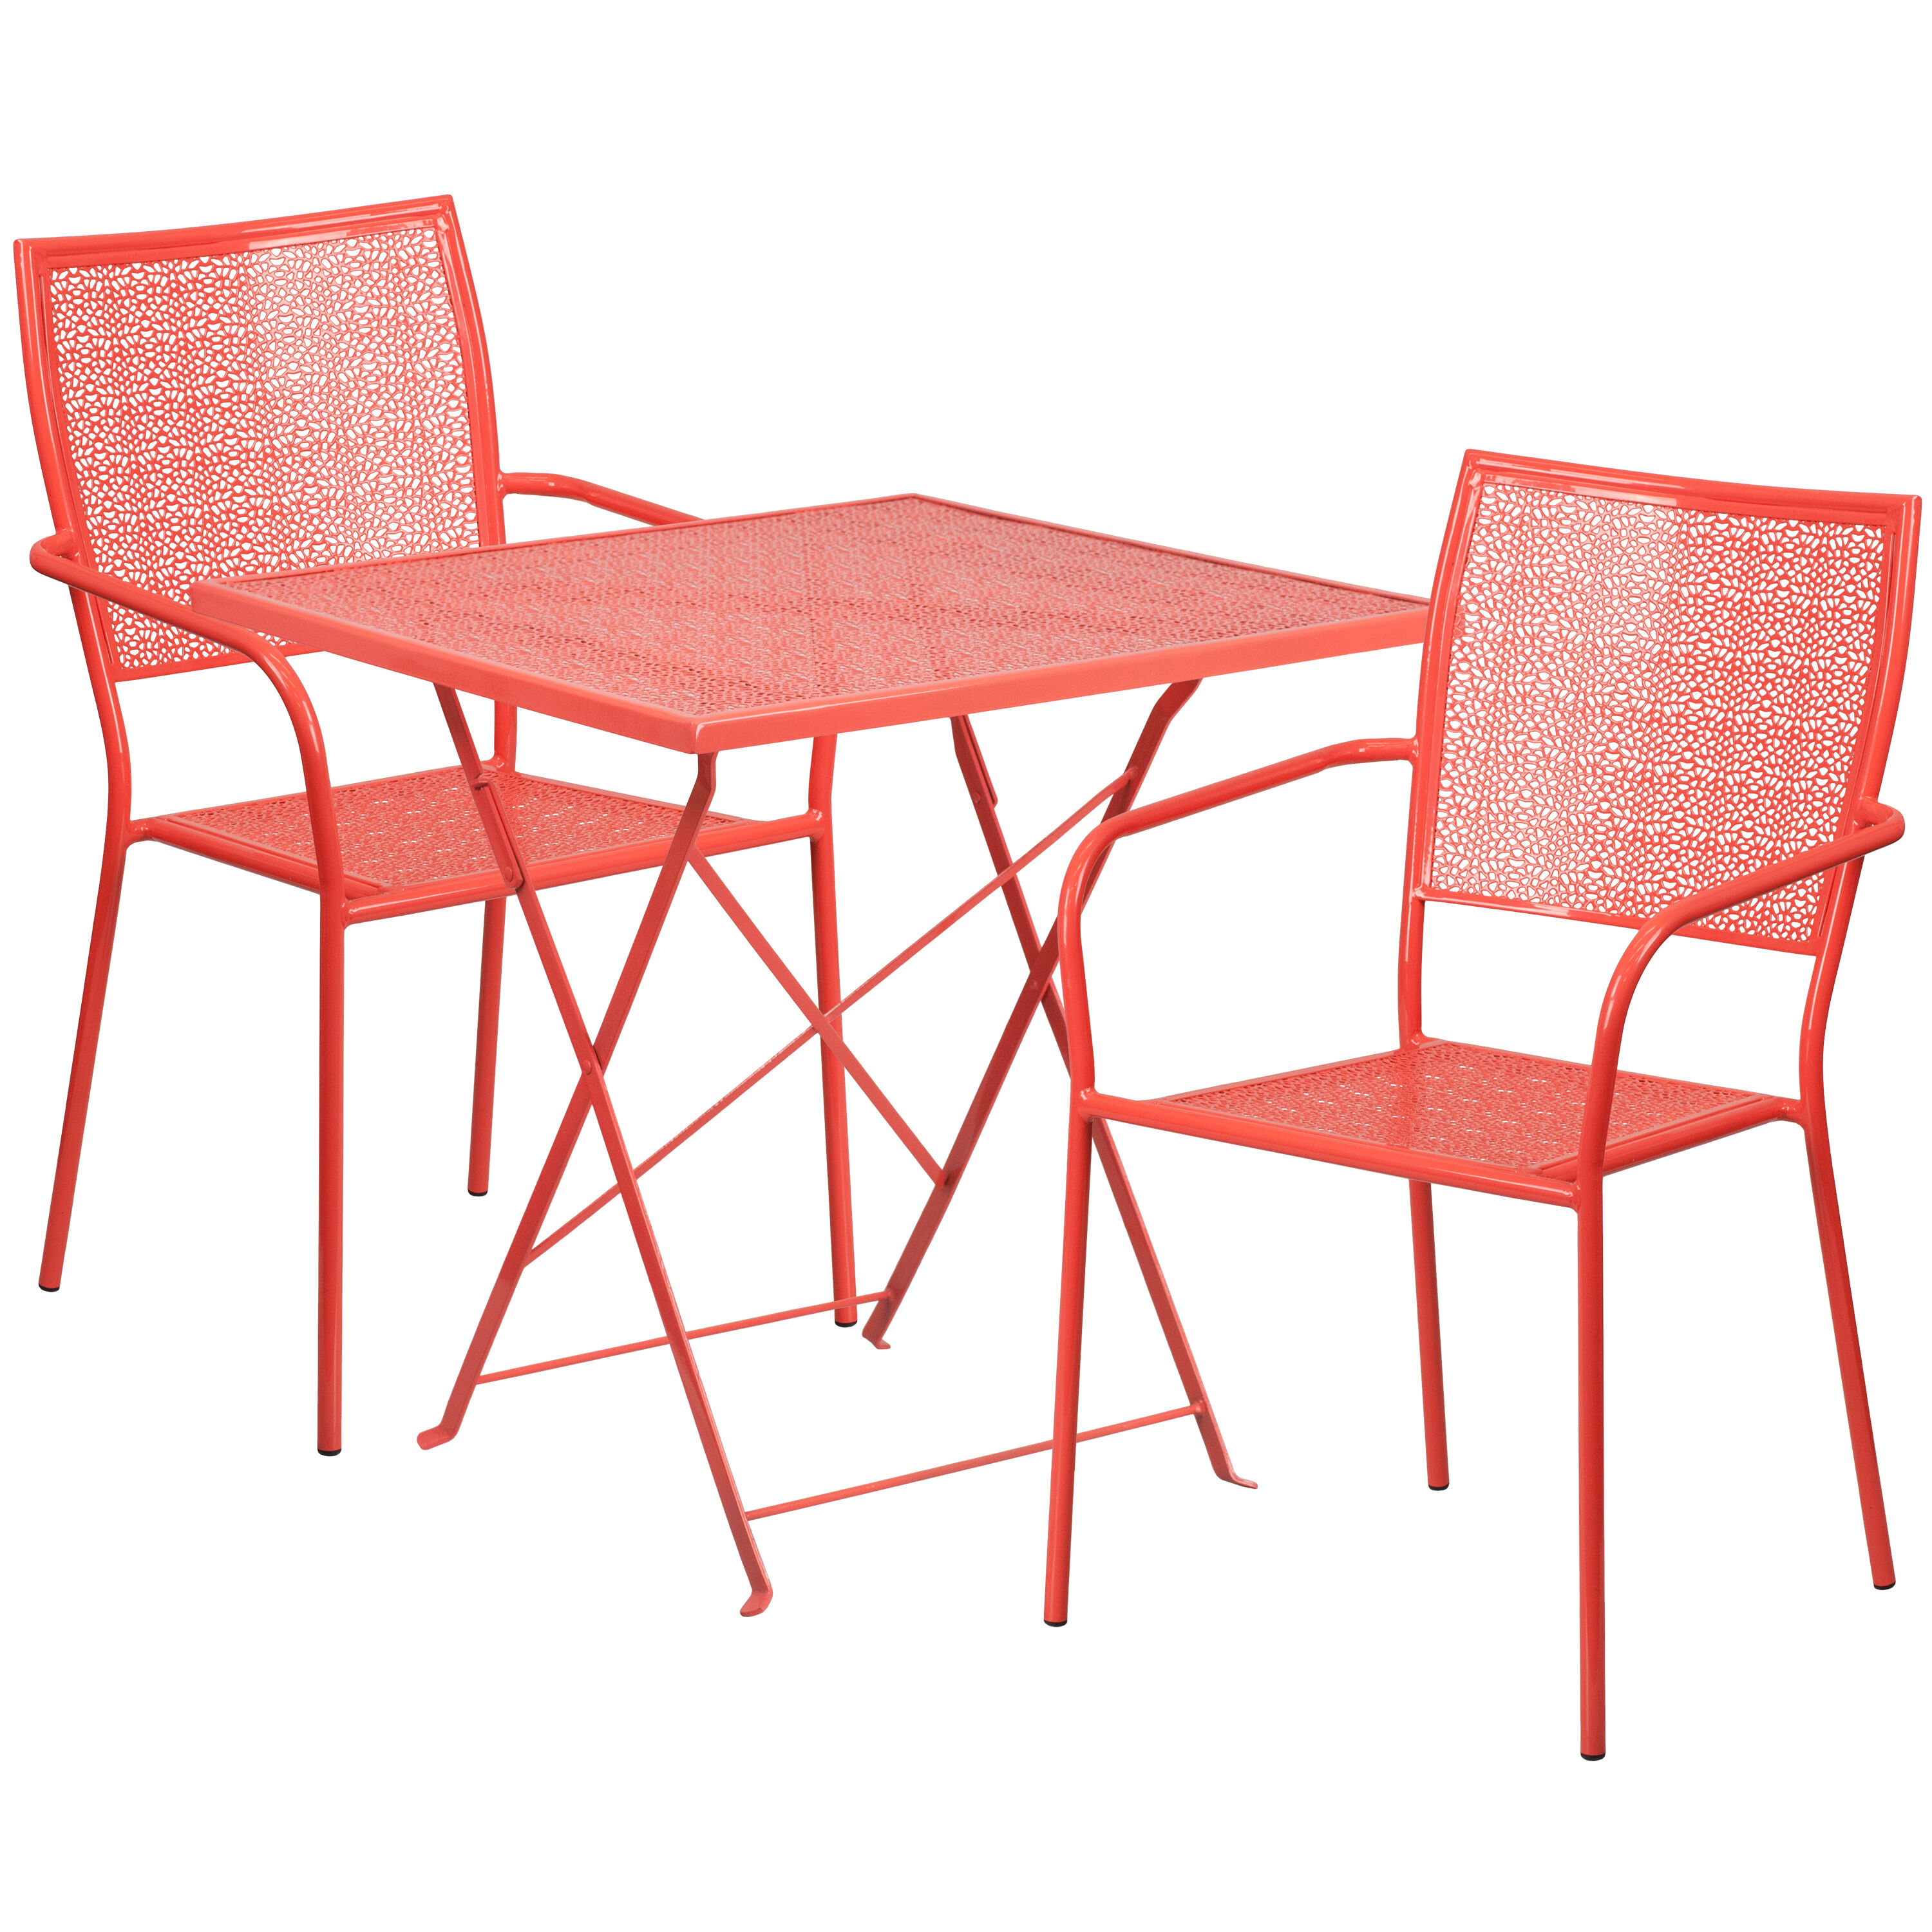 Red Patio Chairs 28 Square Coral Indoor Outdoor Steel Folding Patio Table Set With 2 Square Back Chairs